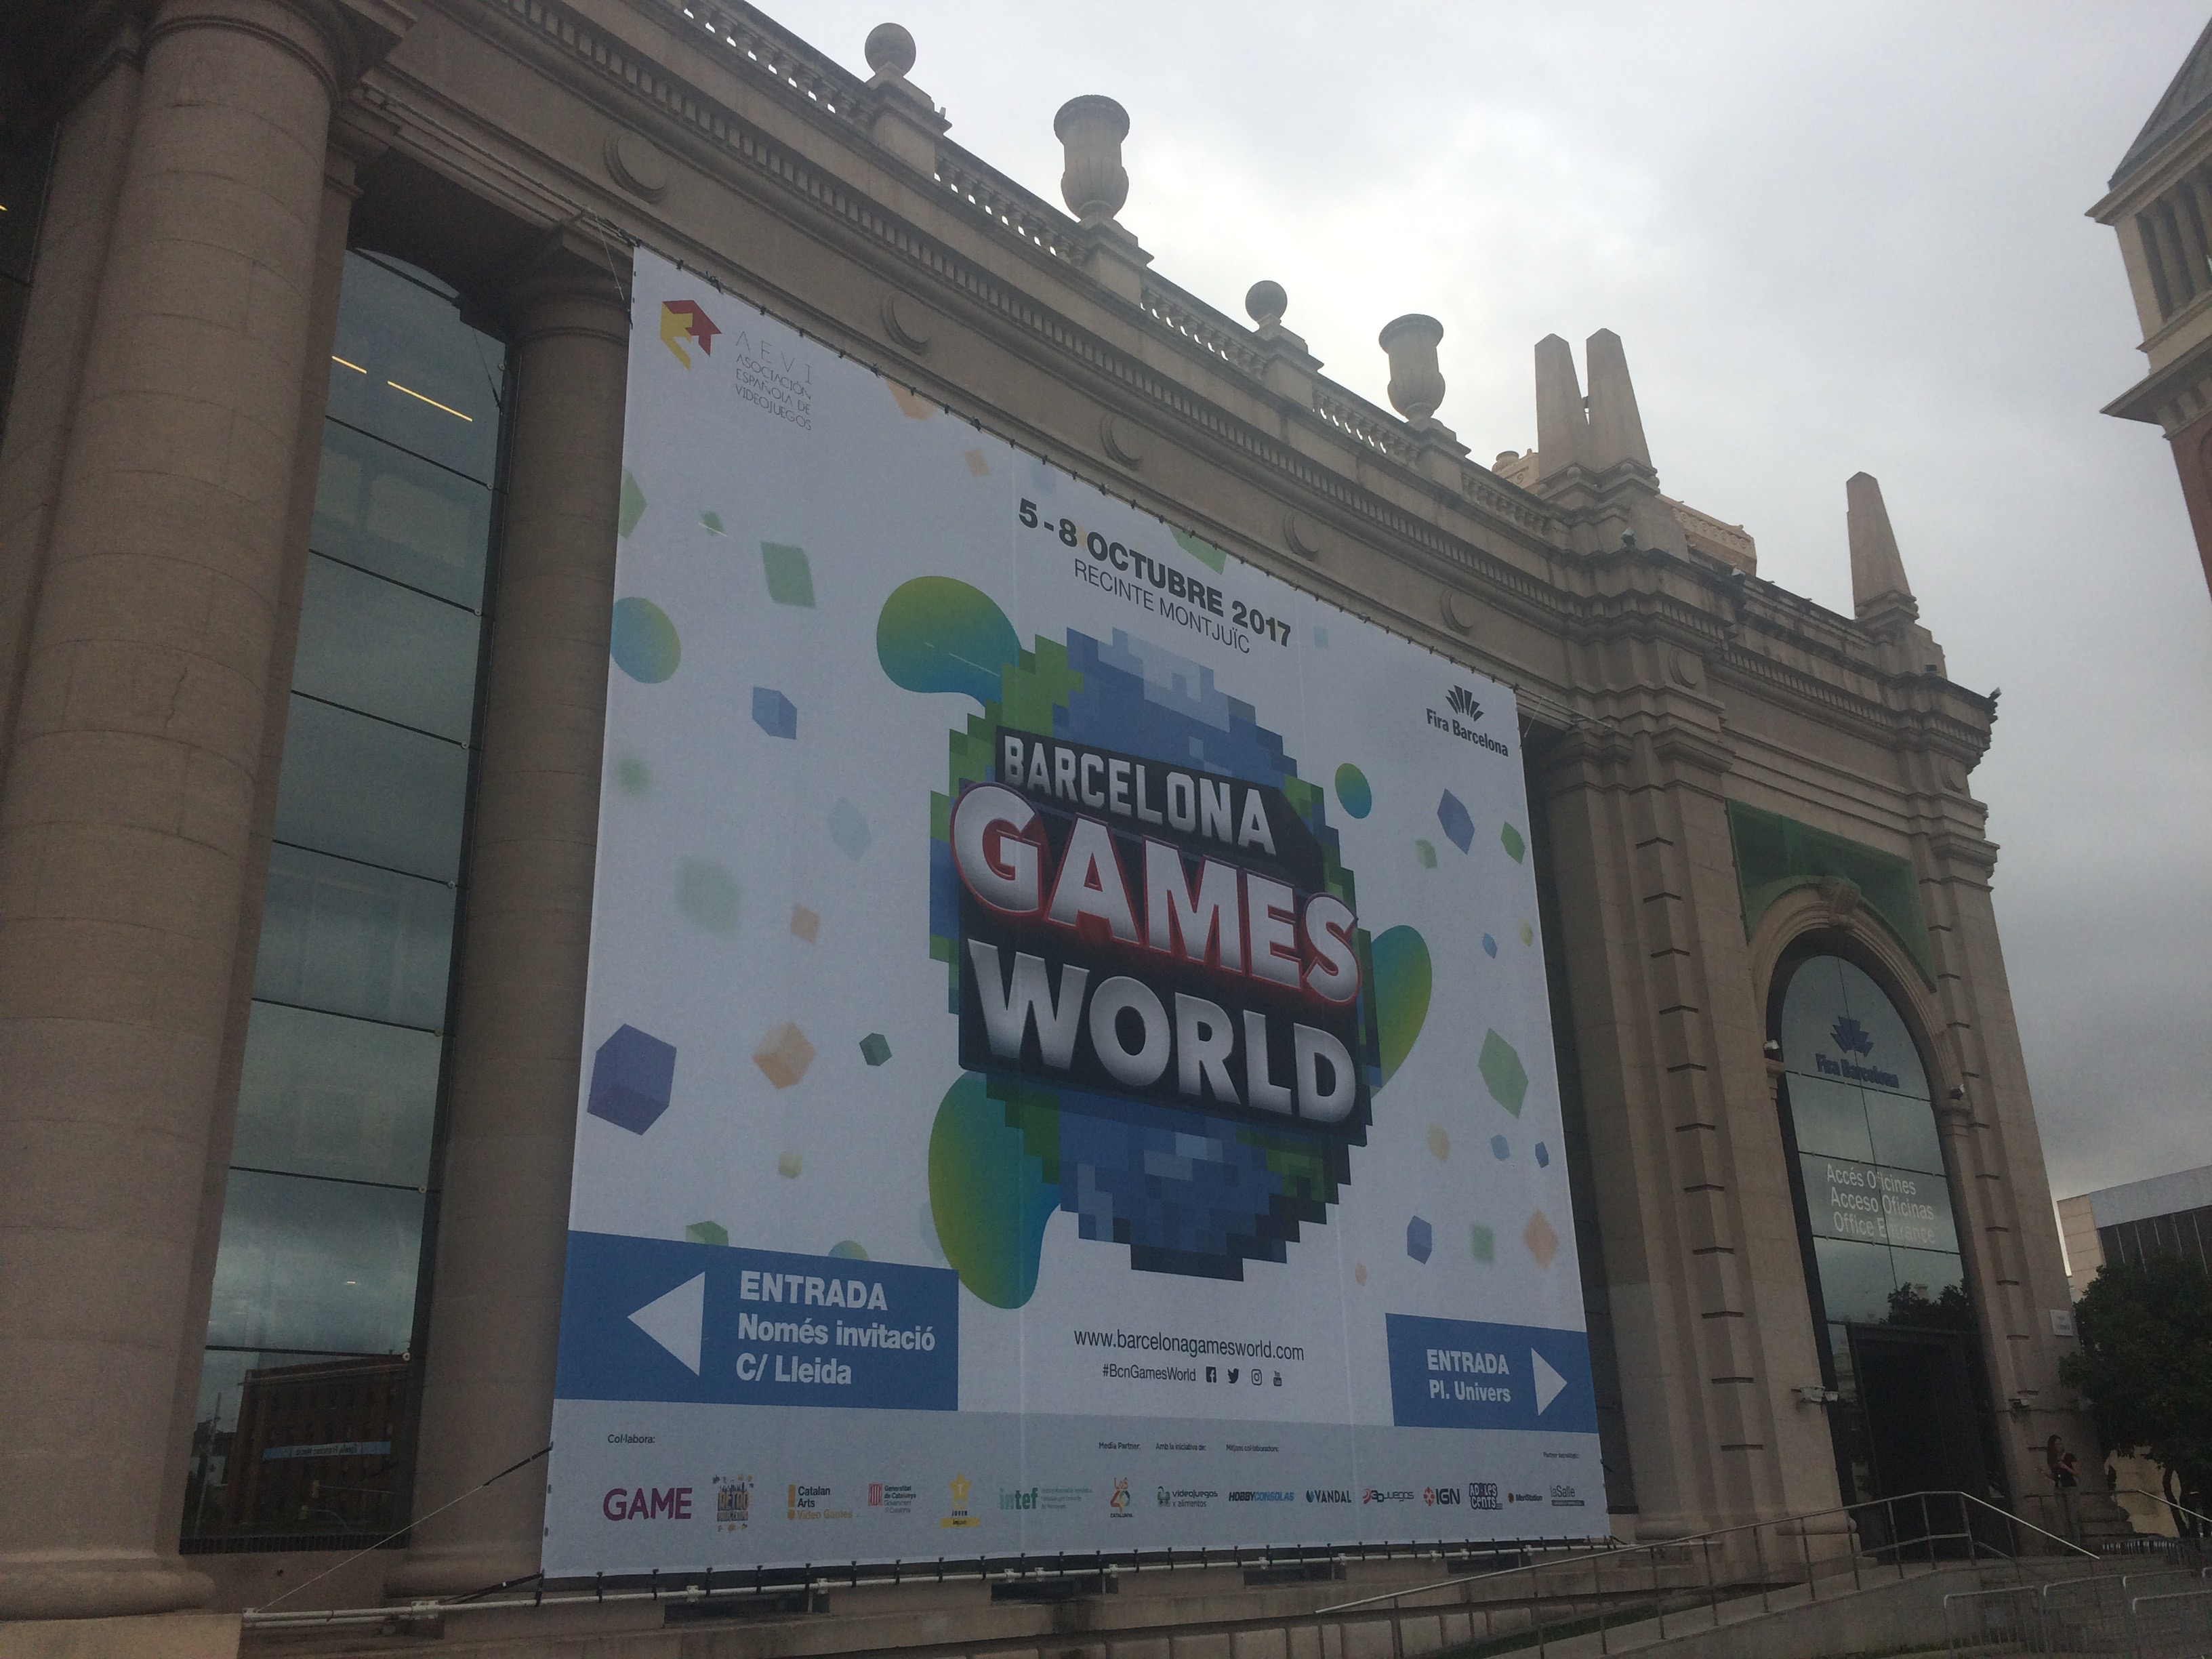 Despues de Barcelona Games World 2017